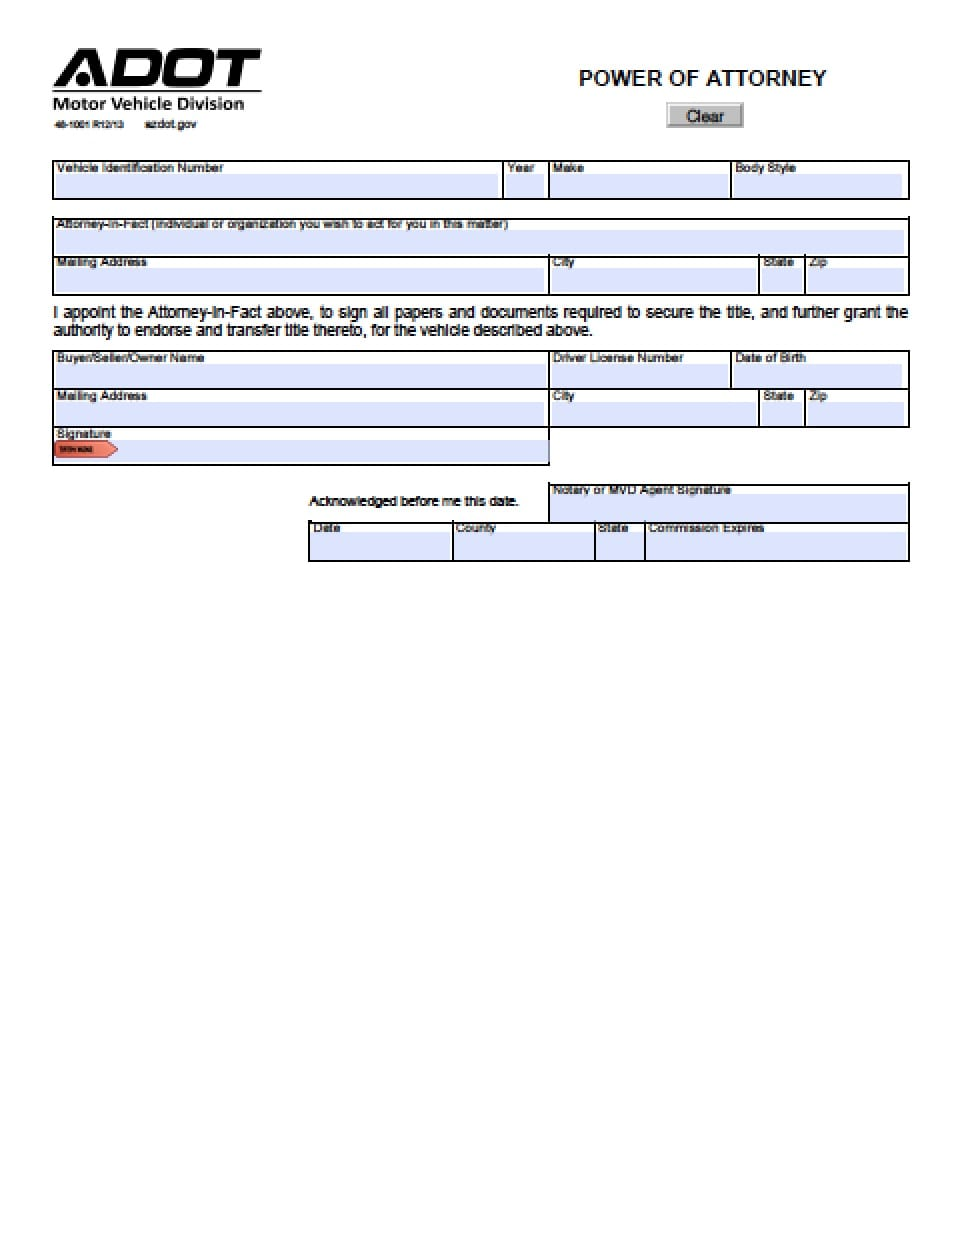 power of attorney form az mvd  Arizona Vehicle Power of Attorney Form - Power of Attorney ...